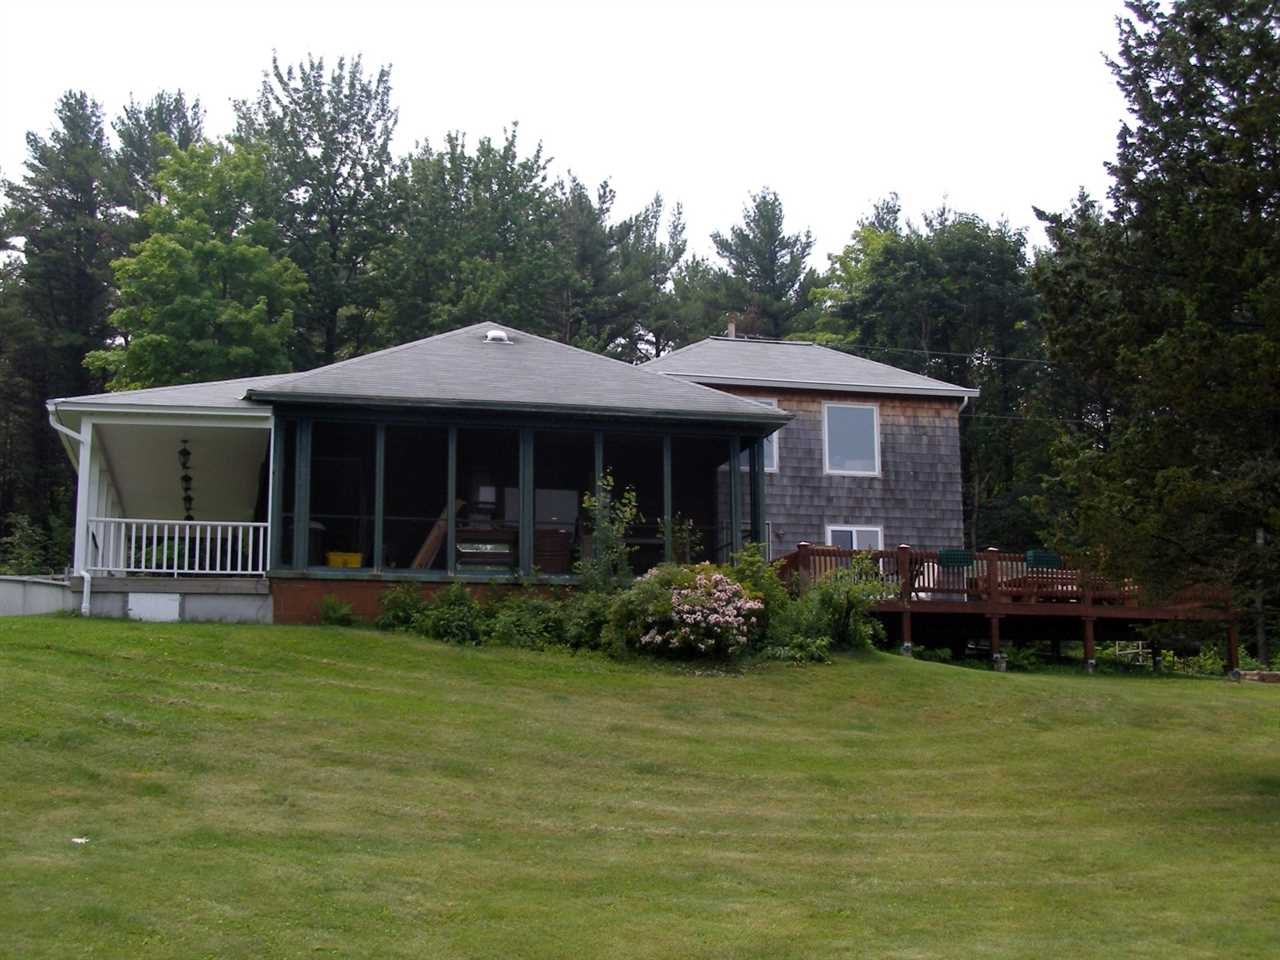 772 CLARKSVILLE SOUTH RD, New Scotland, NY 12041-0000